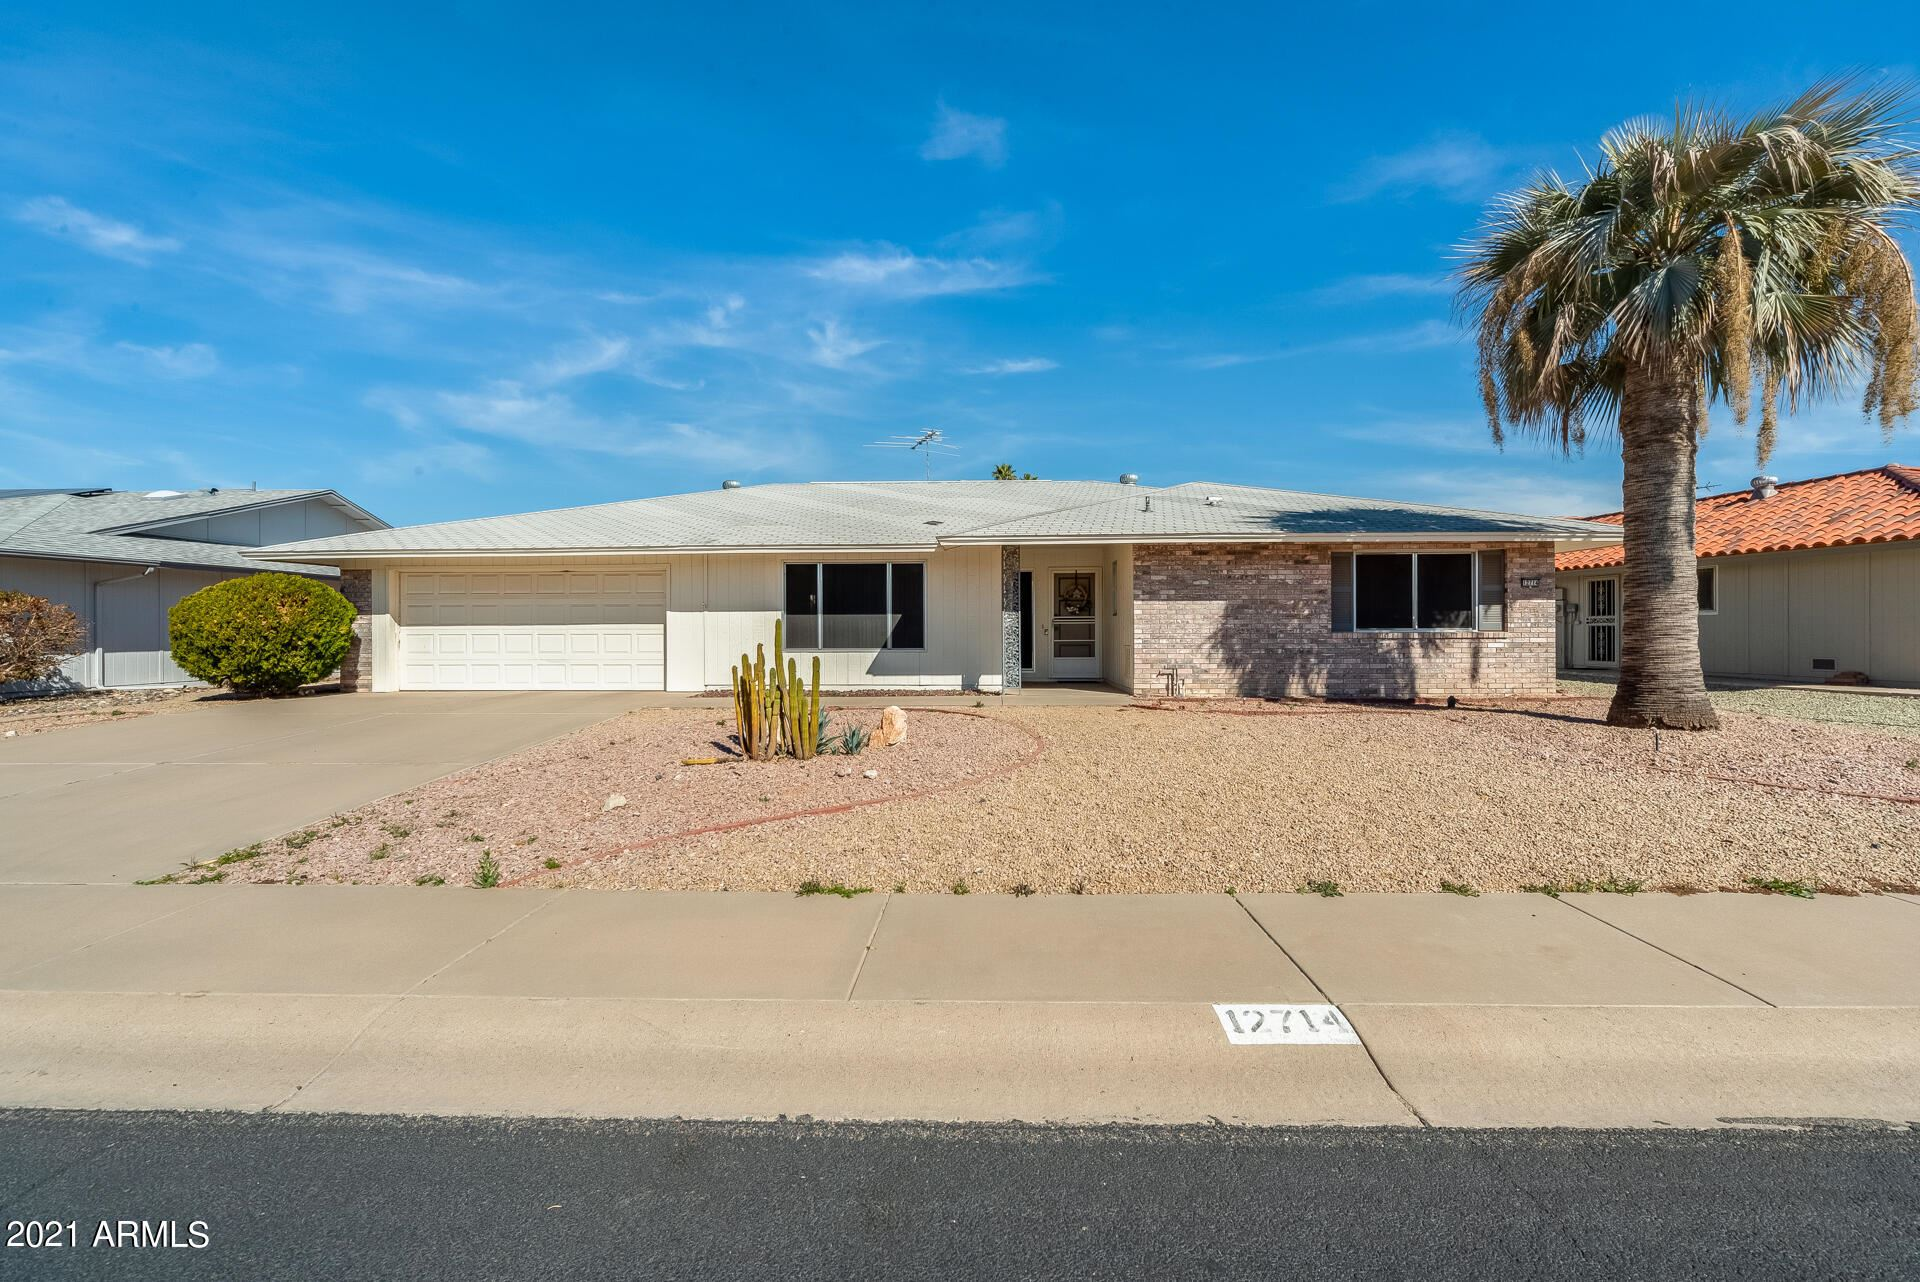 Photo of 12714 W KEYSTONE Drive, Sun City West, AZ 85375 (MLS # 6196867)